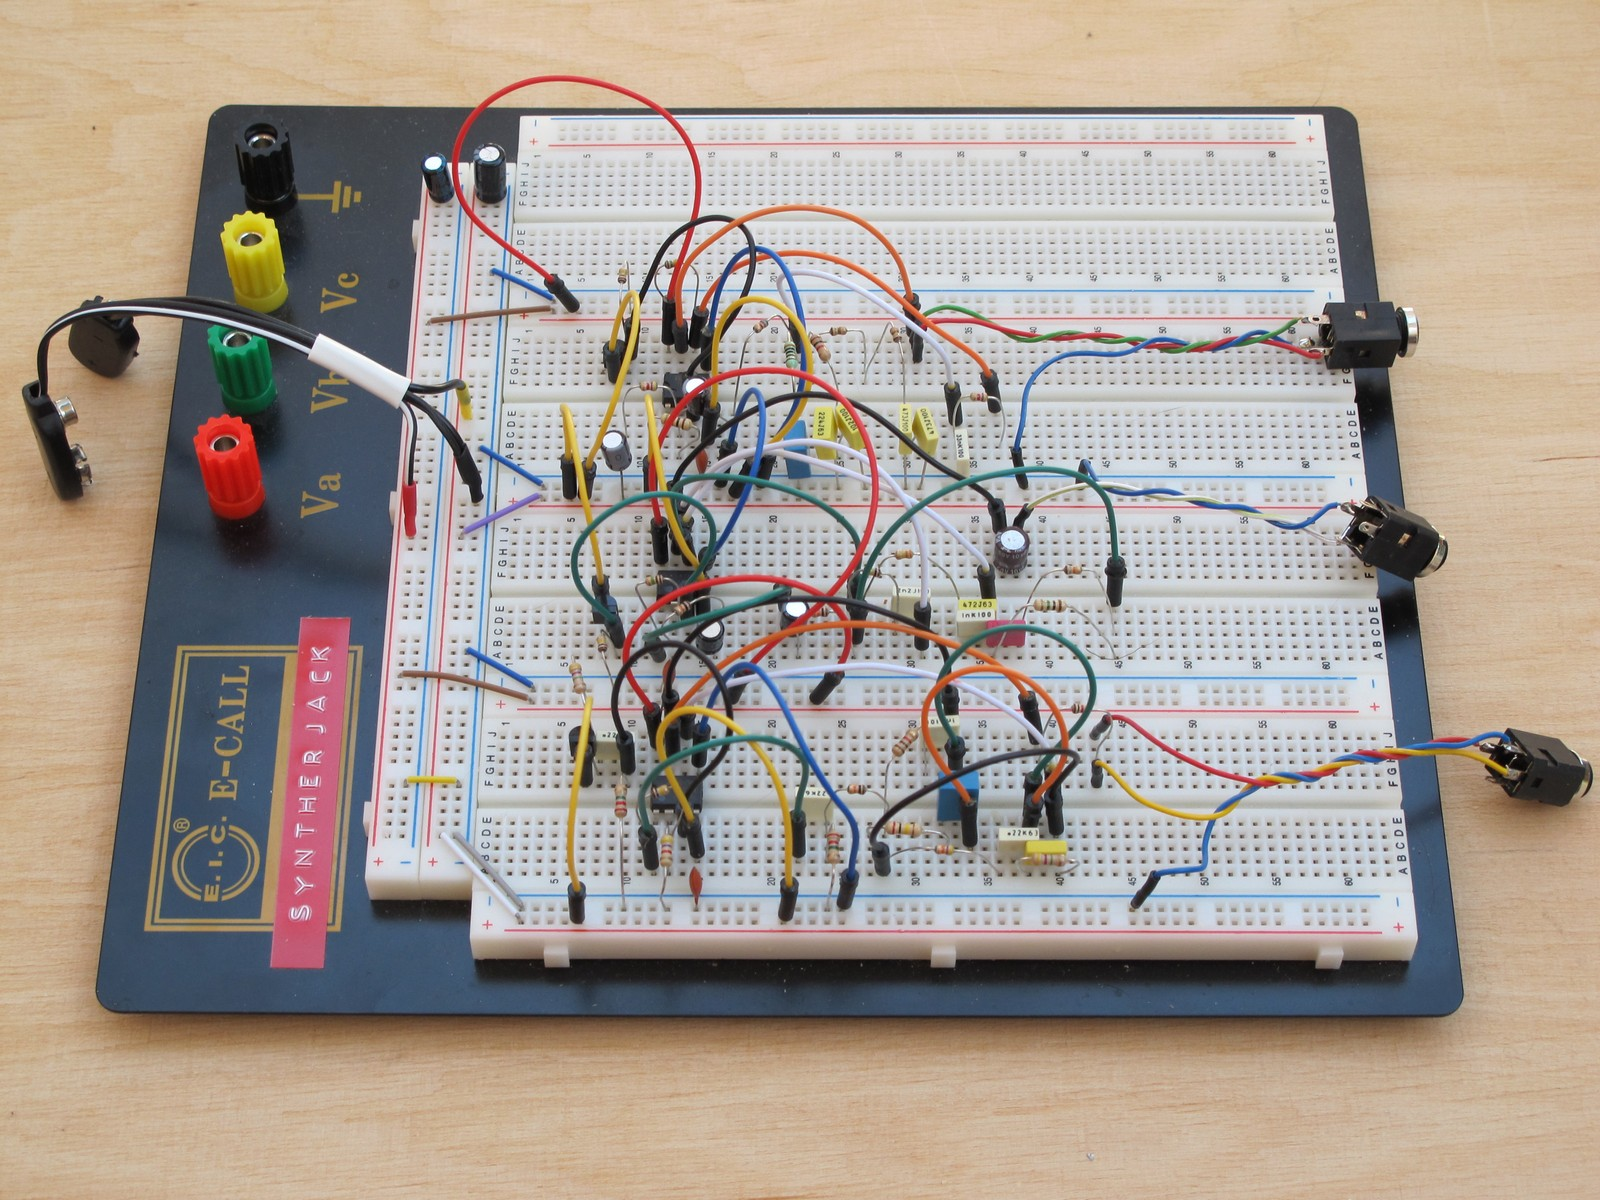 Breadboarded pink noise generators